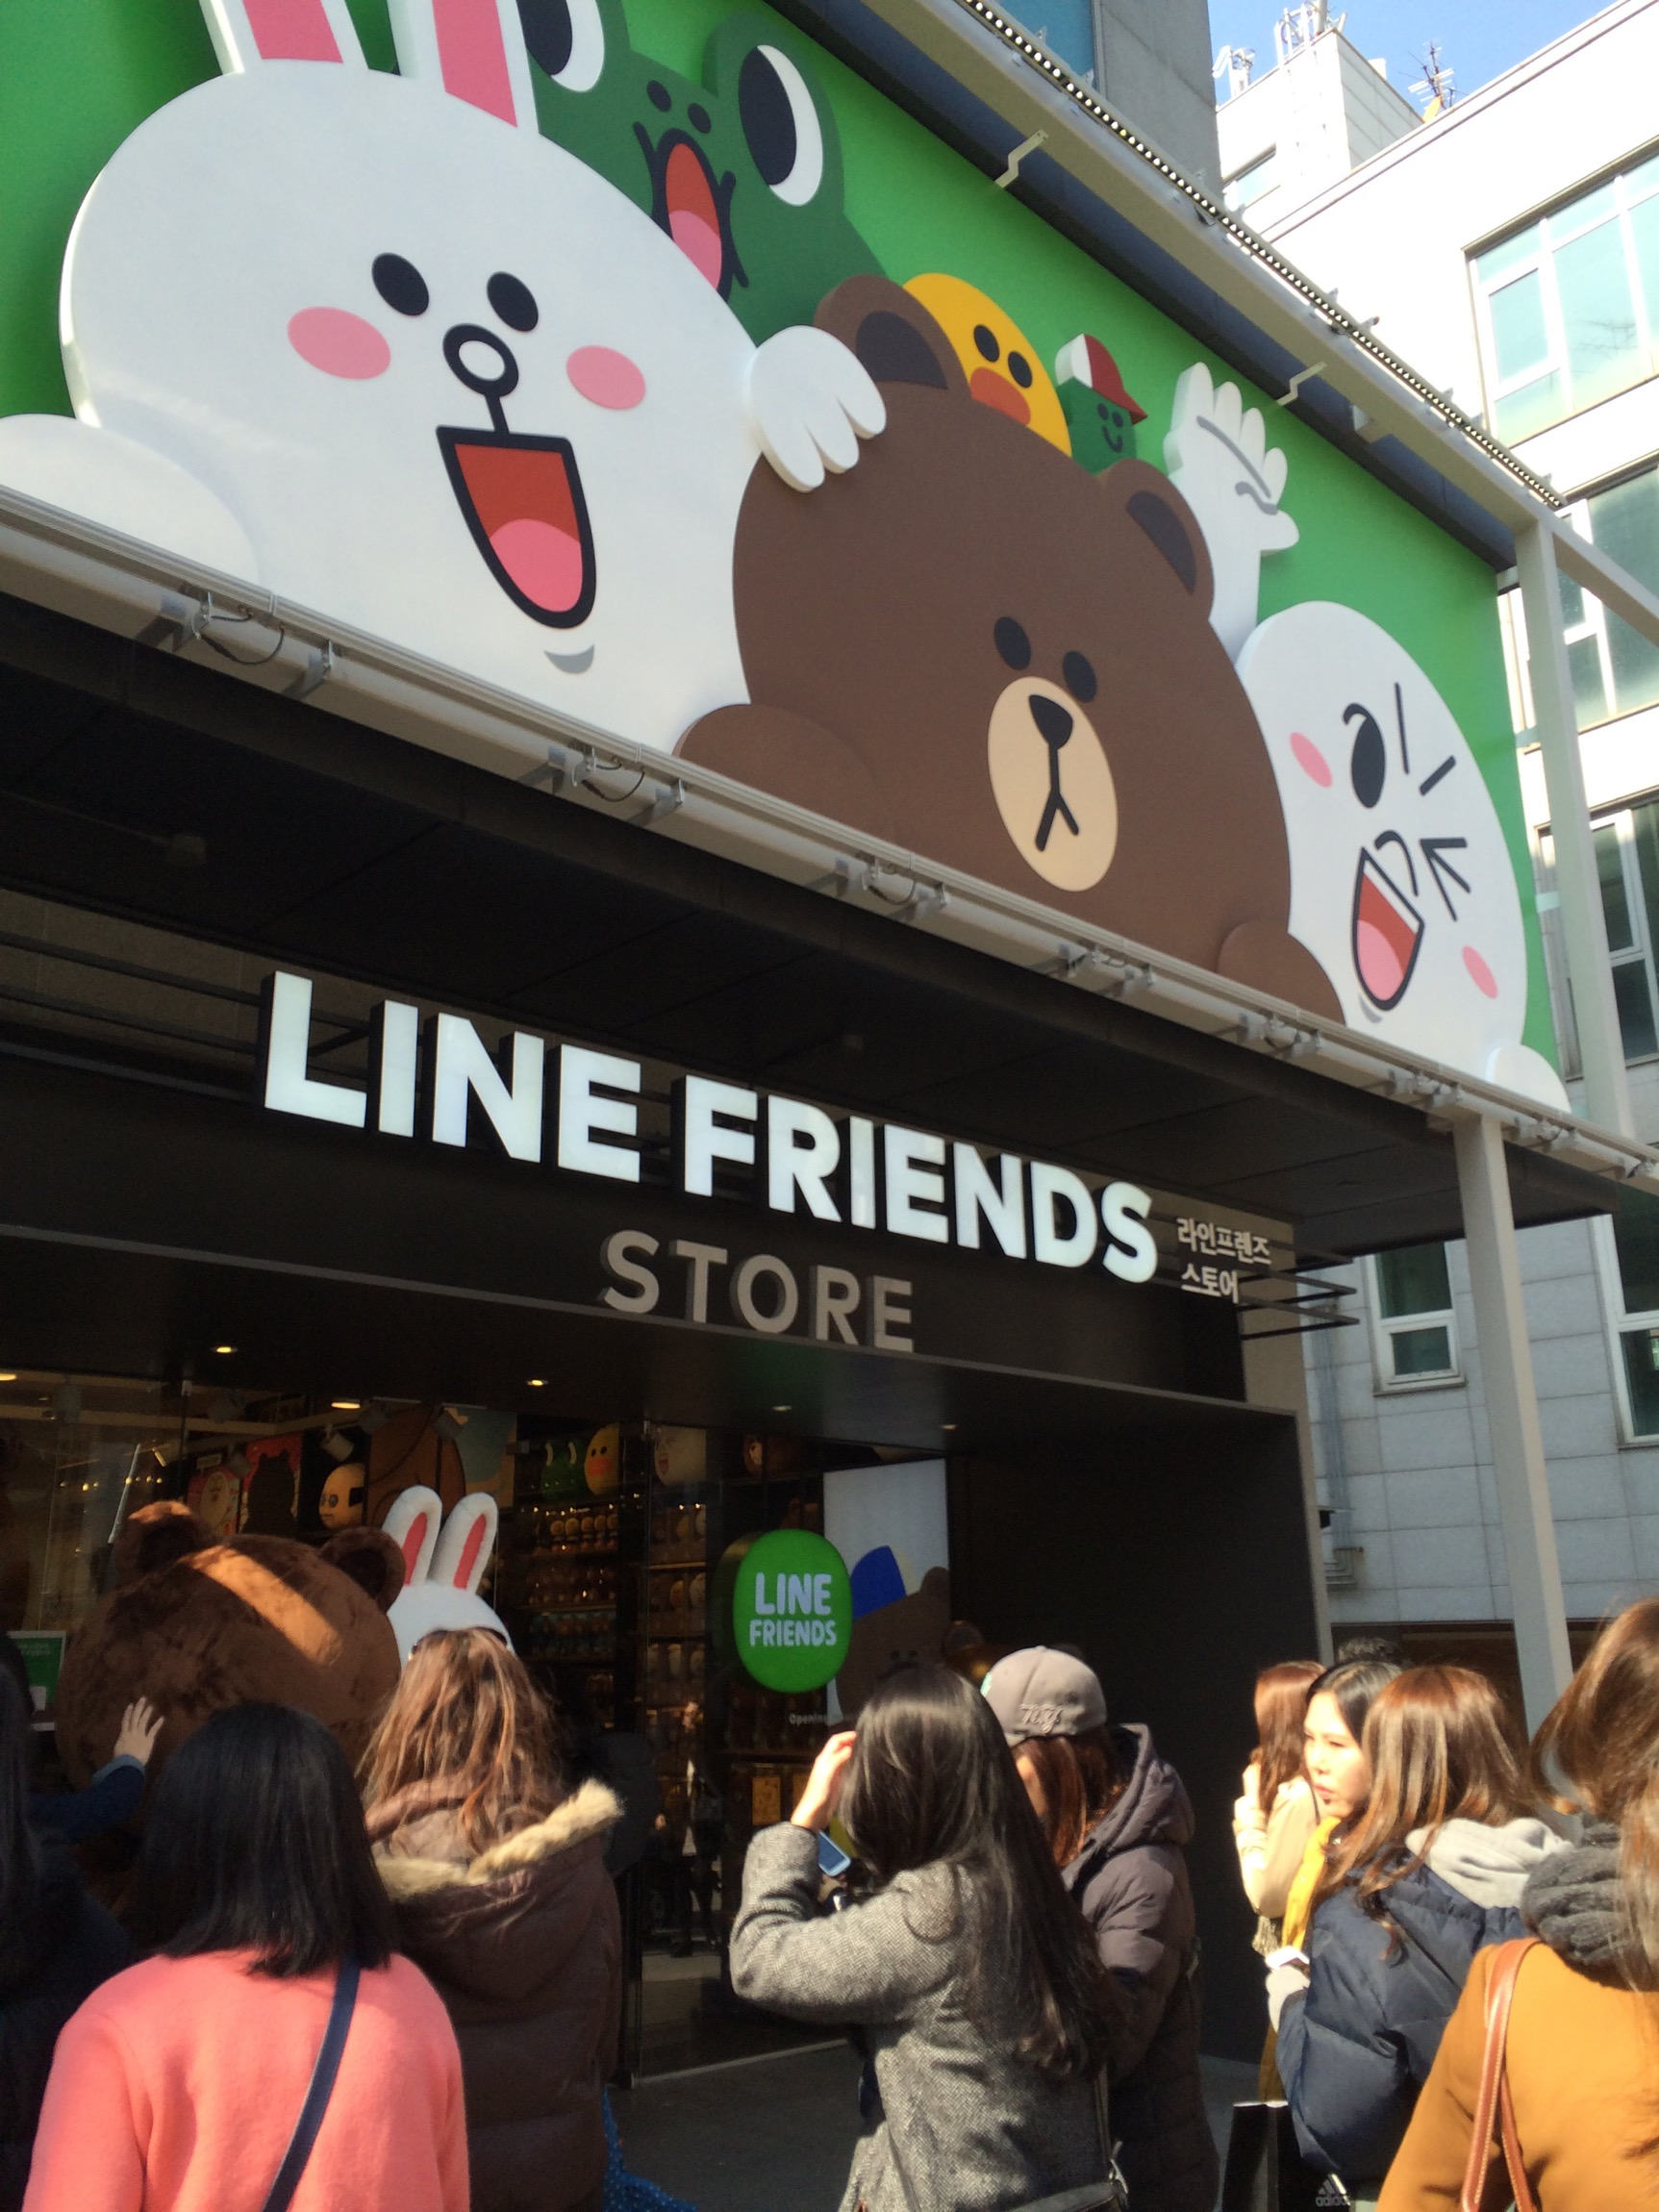 LINE FRIENDS store in Sinsa with lots of cuteness